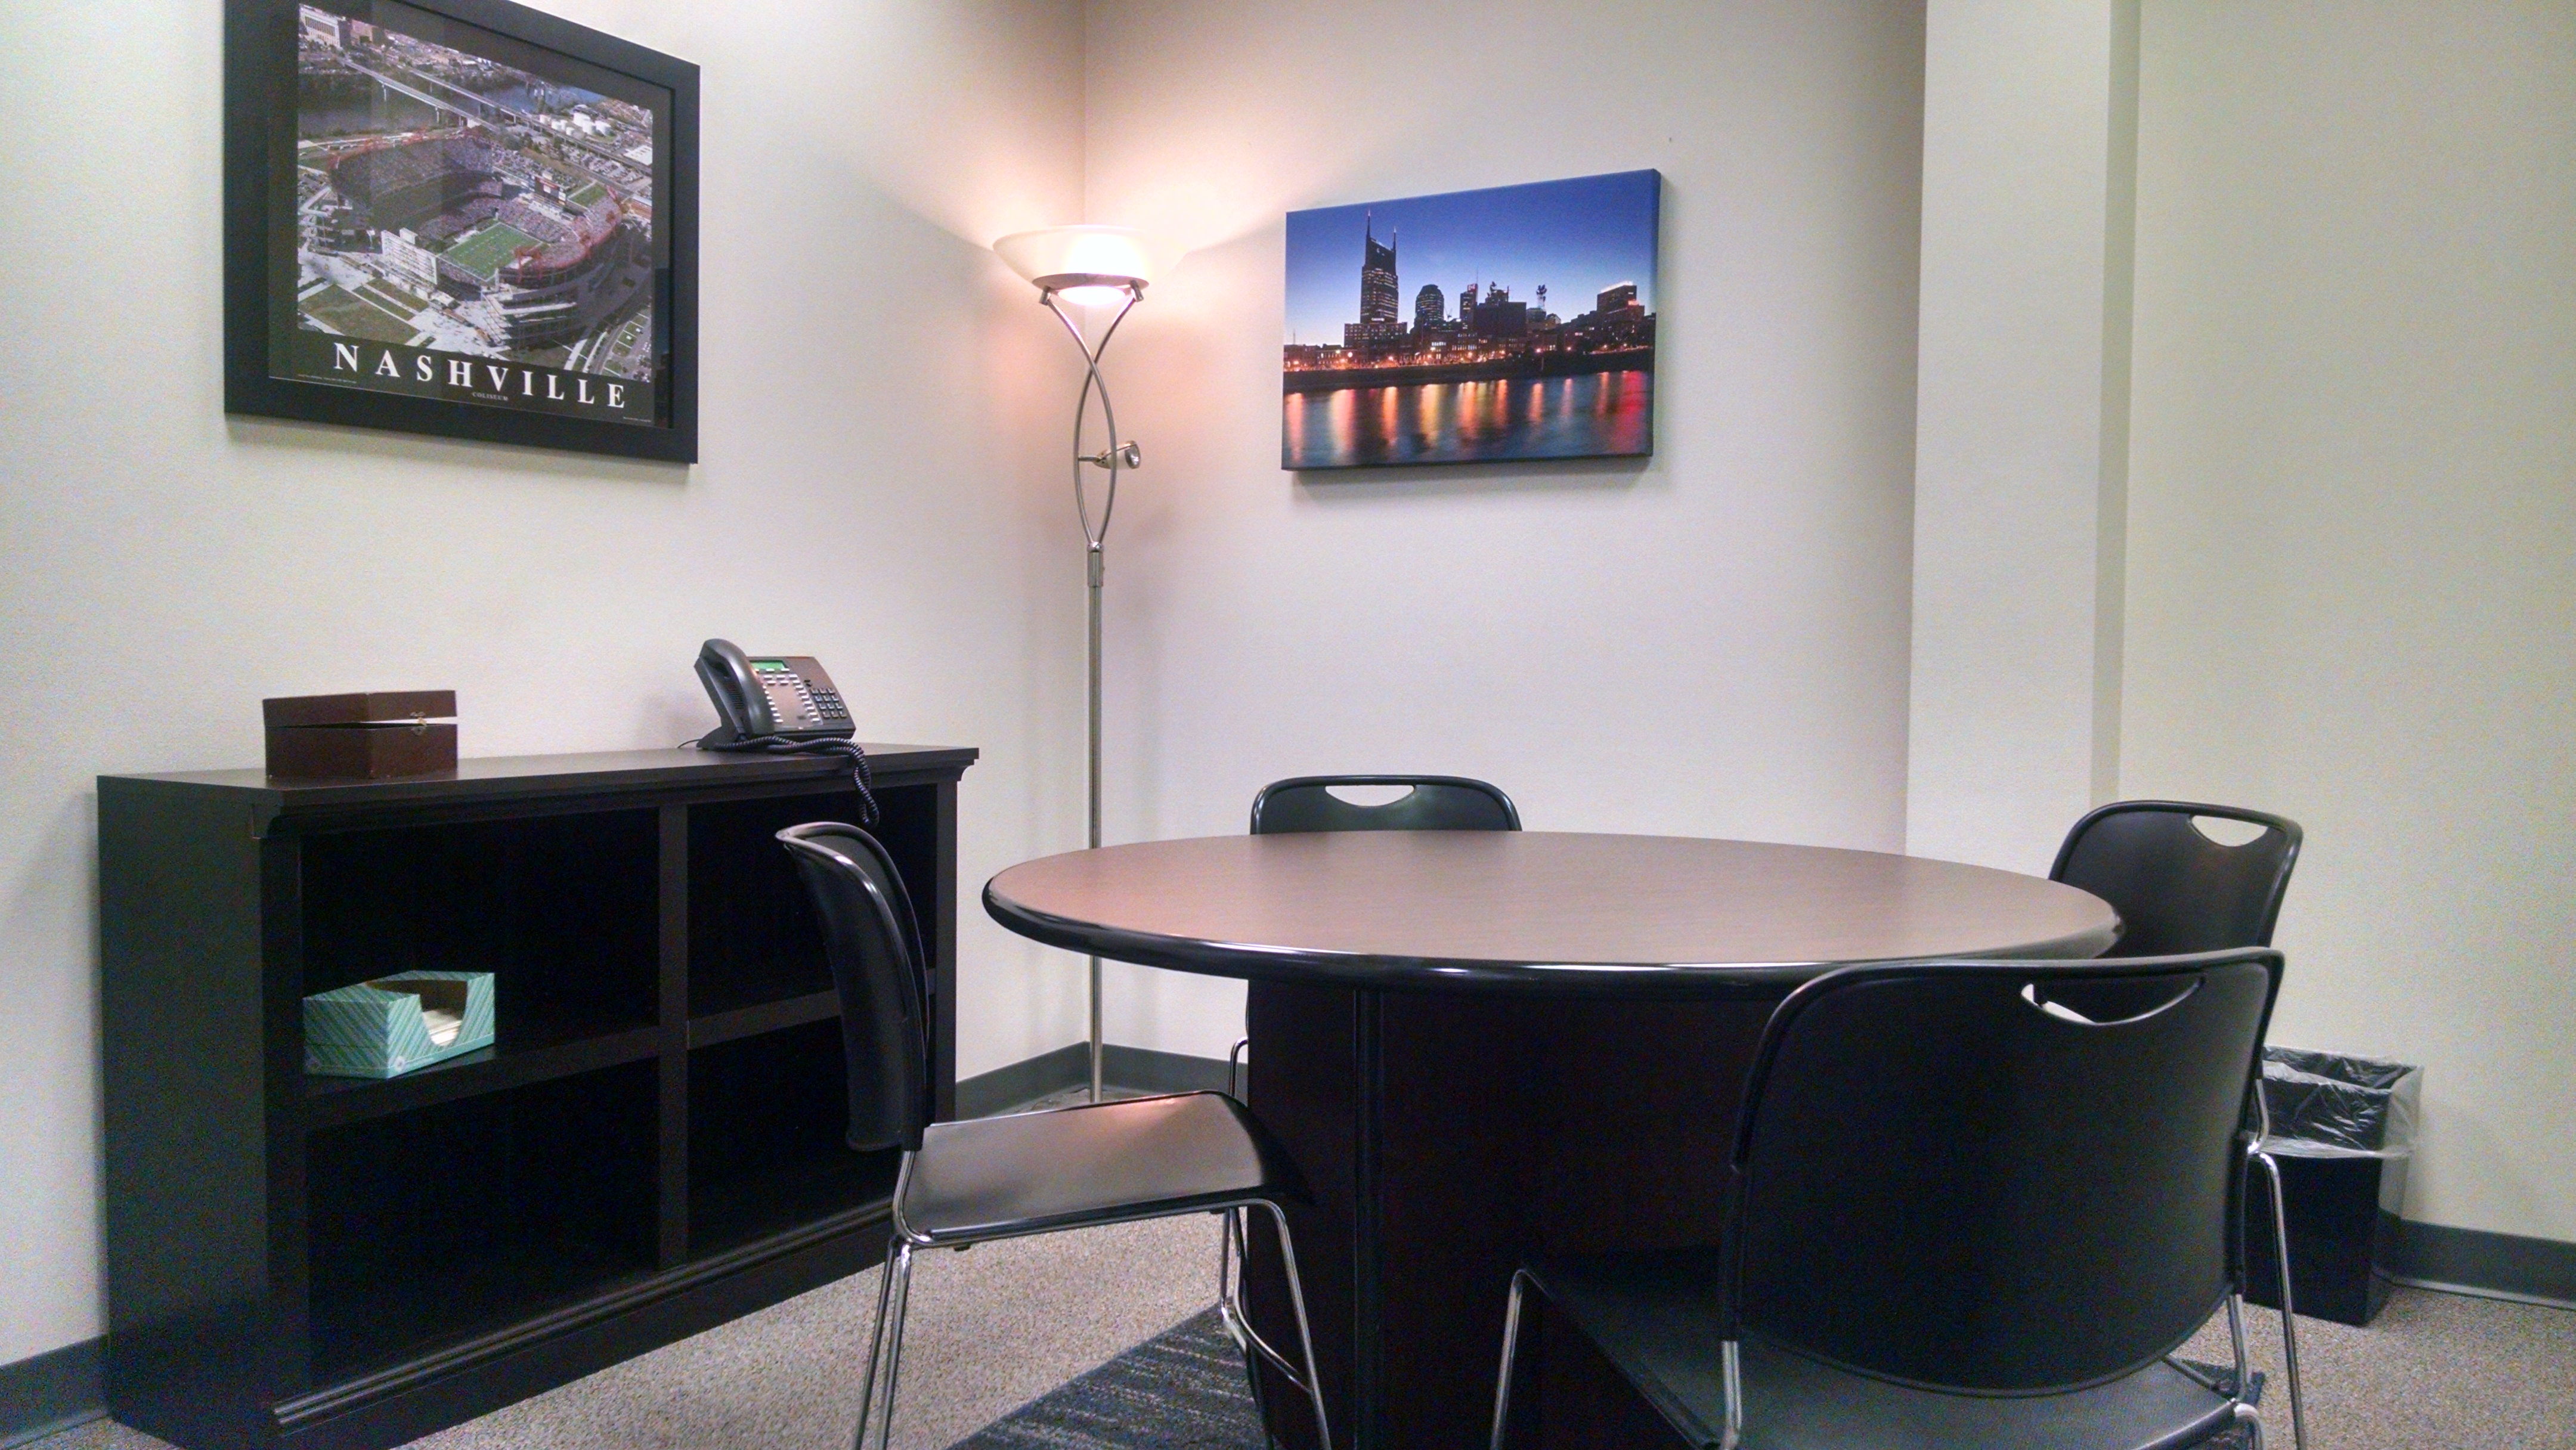 Before: General Manager's Office set up as a meeting room